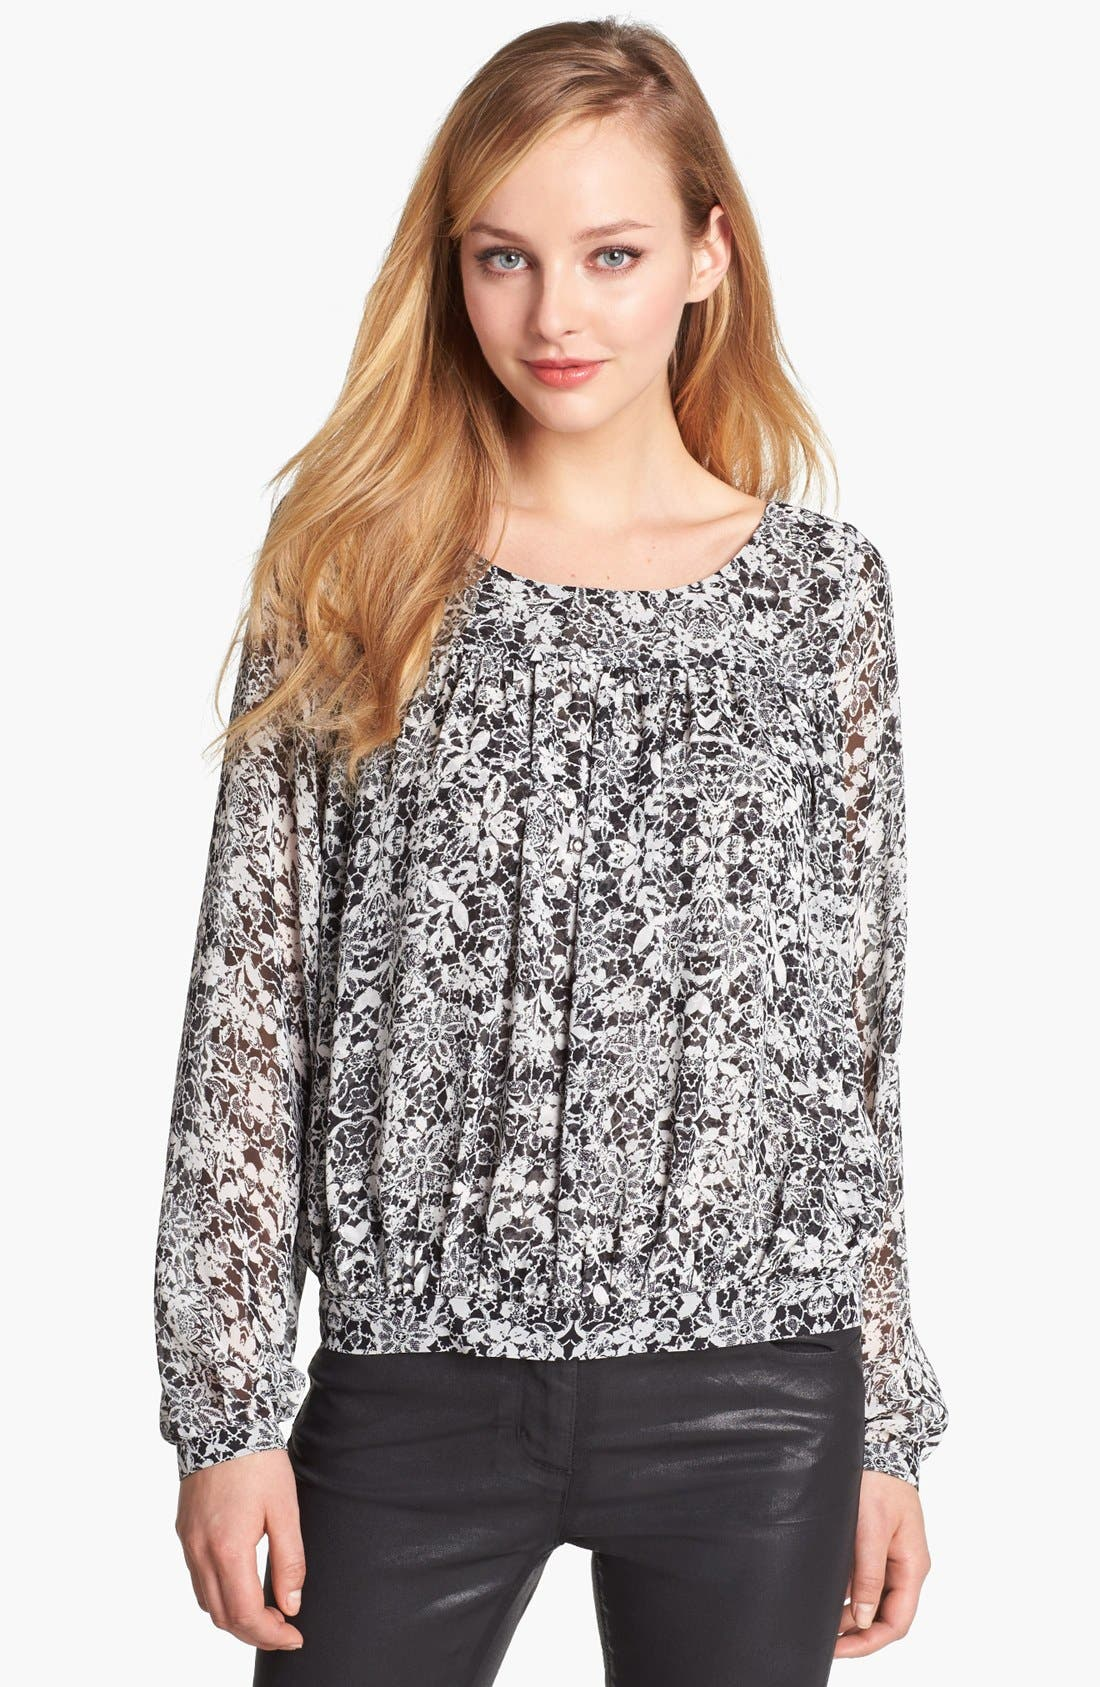 Alternate Image 1 Selected - Vince Camuto Floral Print Peasant Blouse